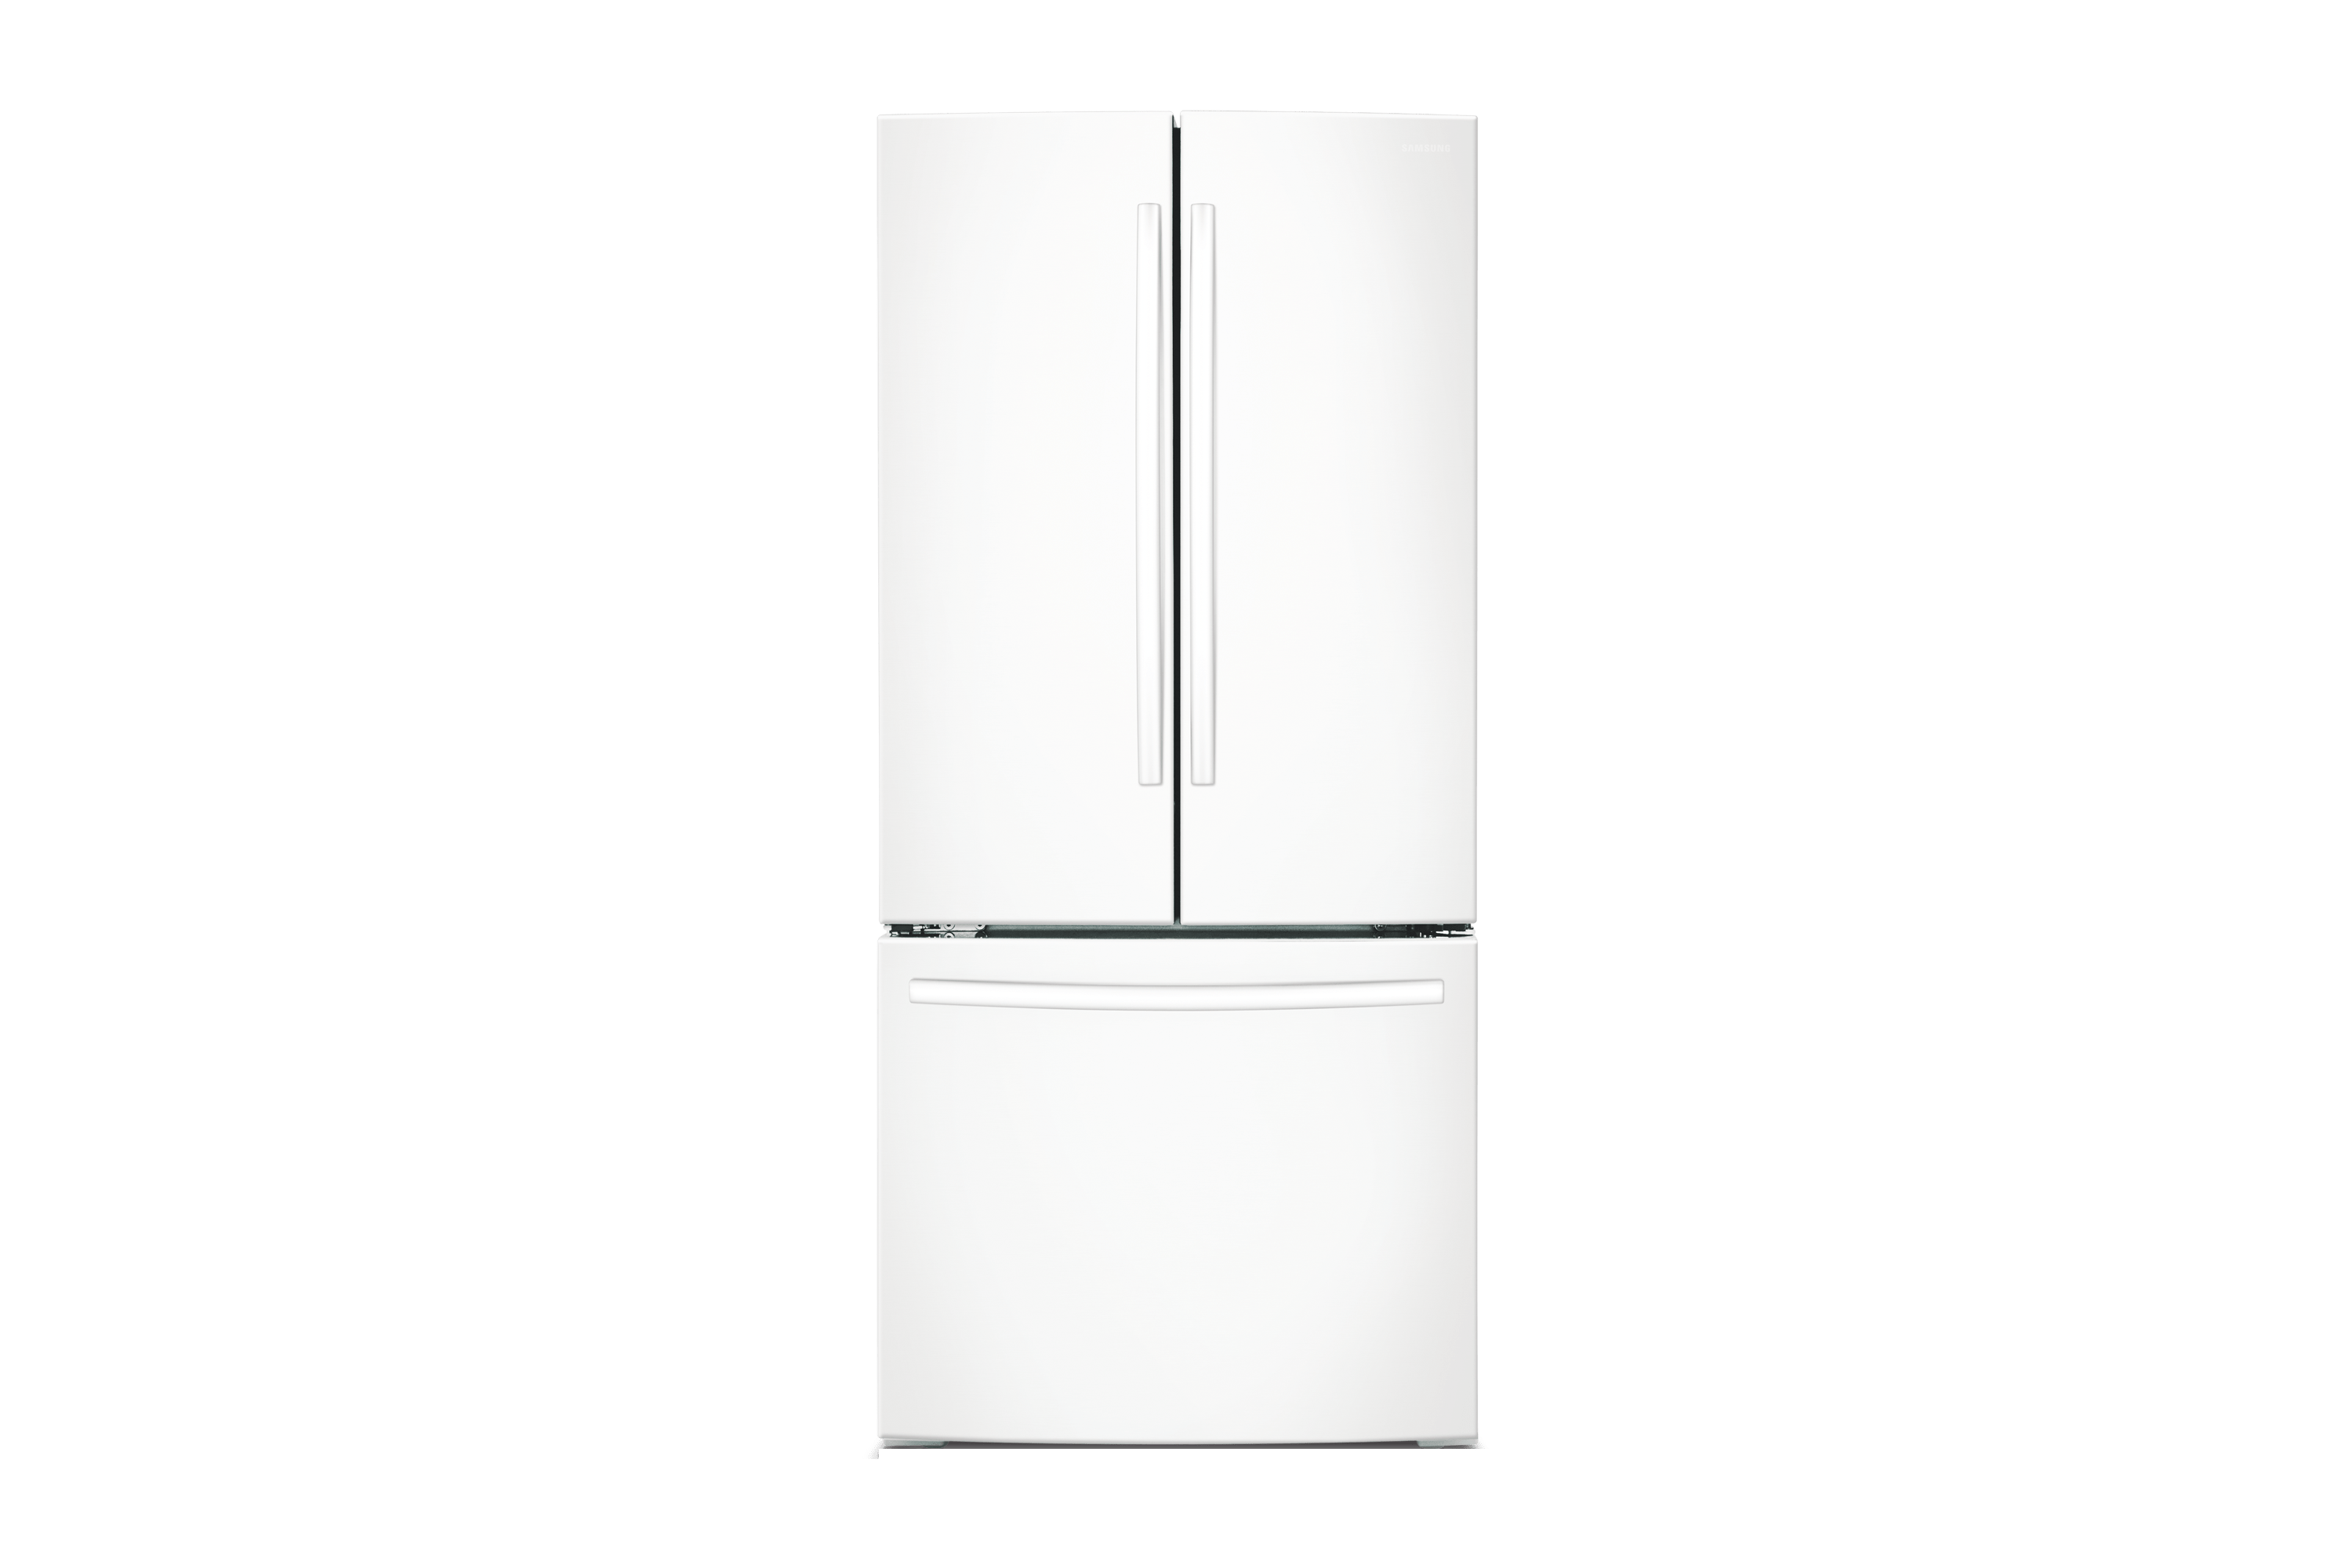 rf220nctaww french door refrigerator with digital inverter technology 21 6 cu ft [ 3000 x 2000 Pixel ]